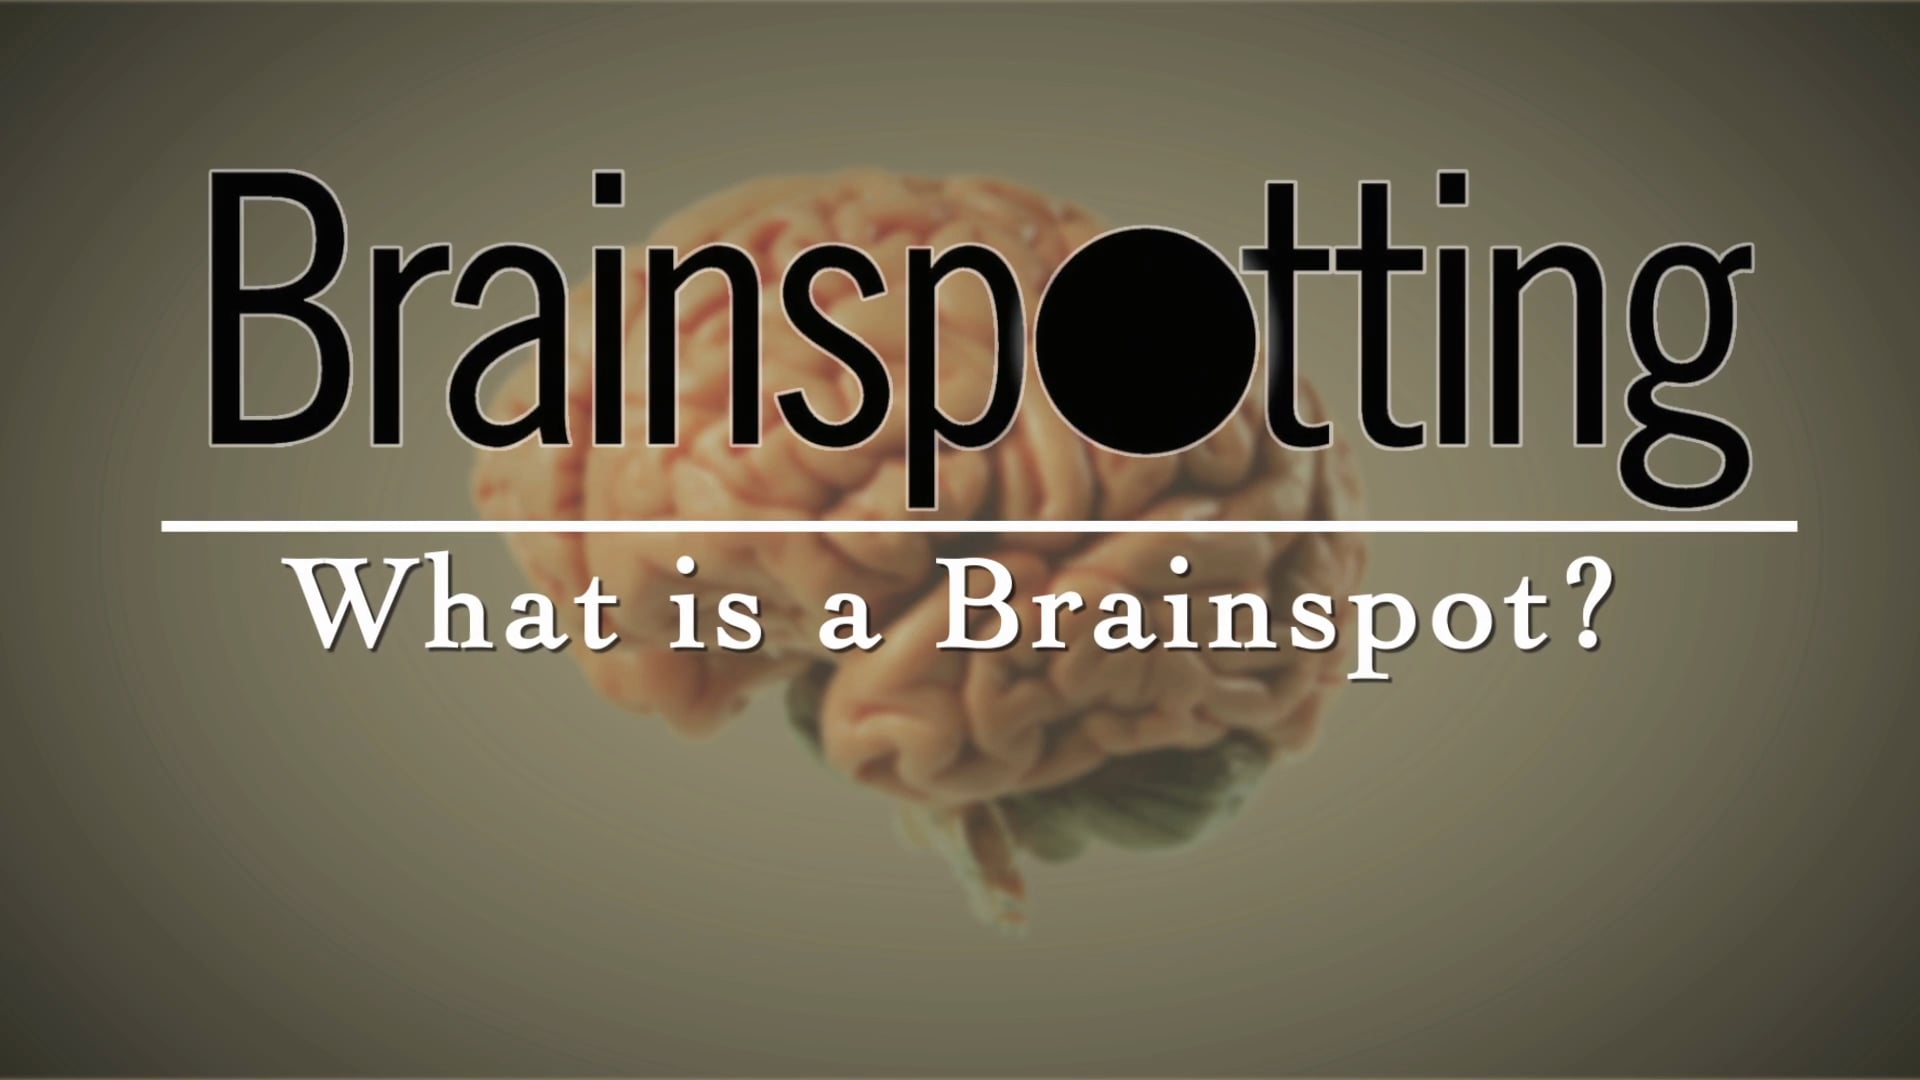 What is Brainspotting?